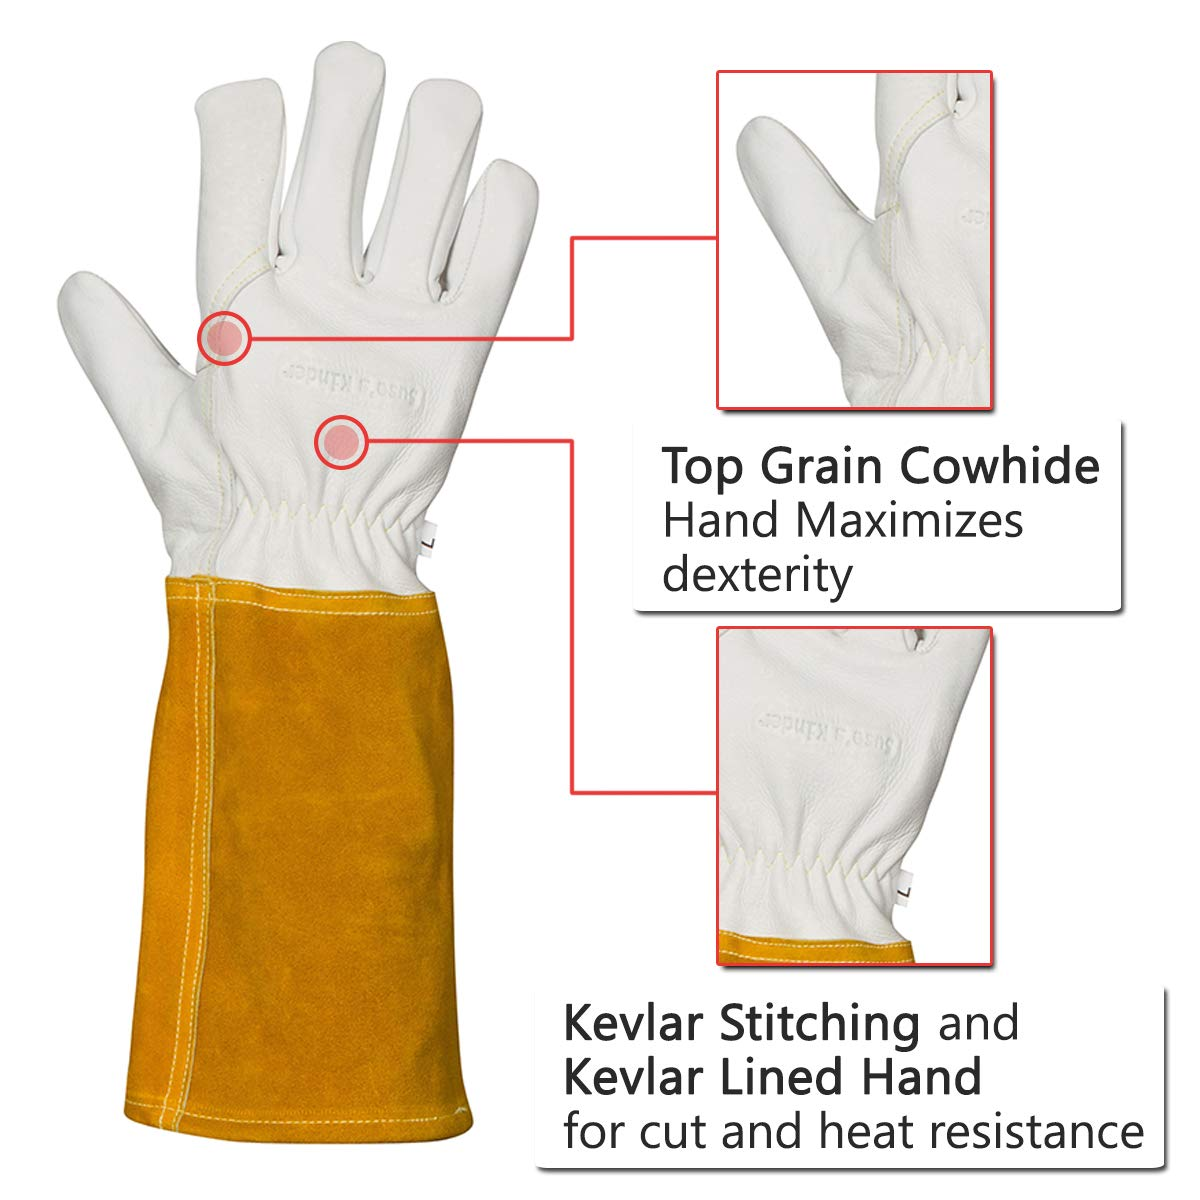 Welding Gloves for Women, Small Mens, Fireproof Heat Resistant, Top Grain Cowhide Kevlar Lined Hand Weld (Small) by Suse's Kinder (Image #4)